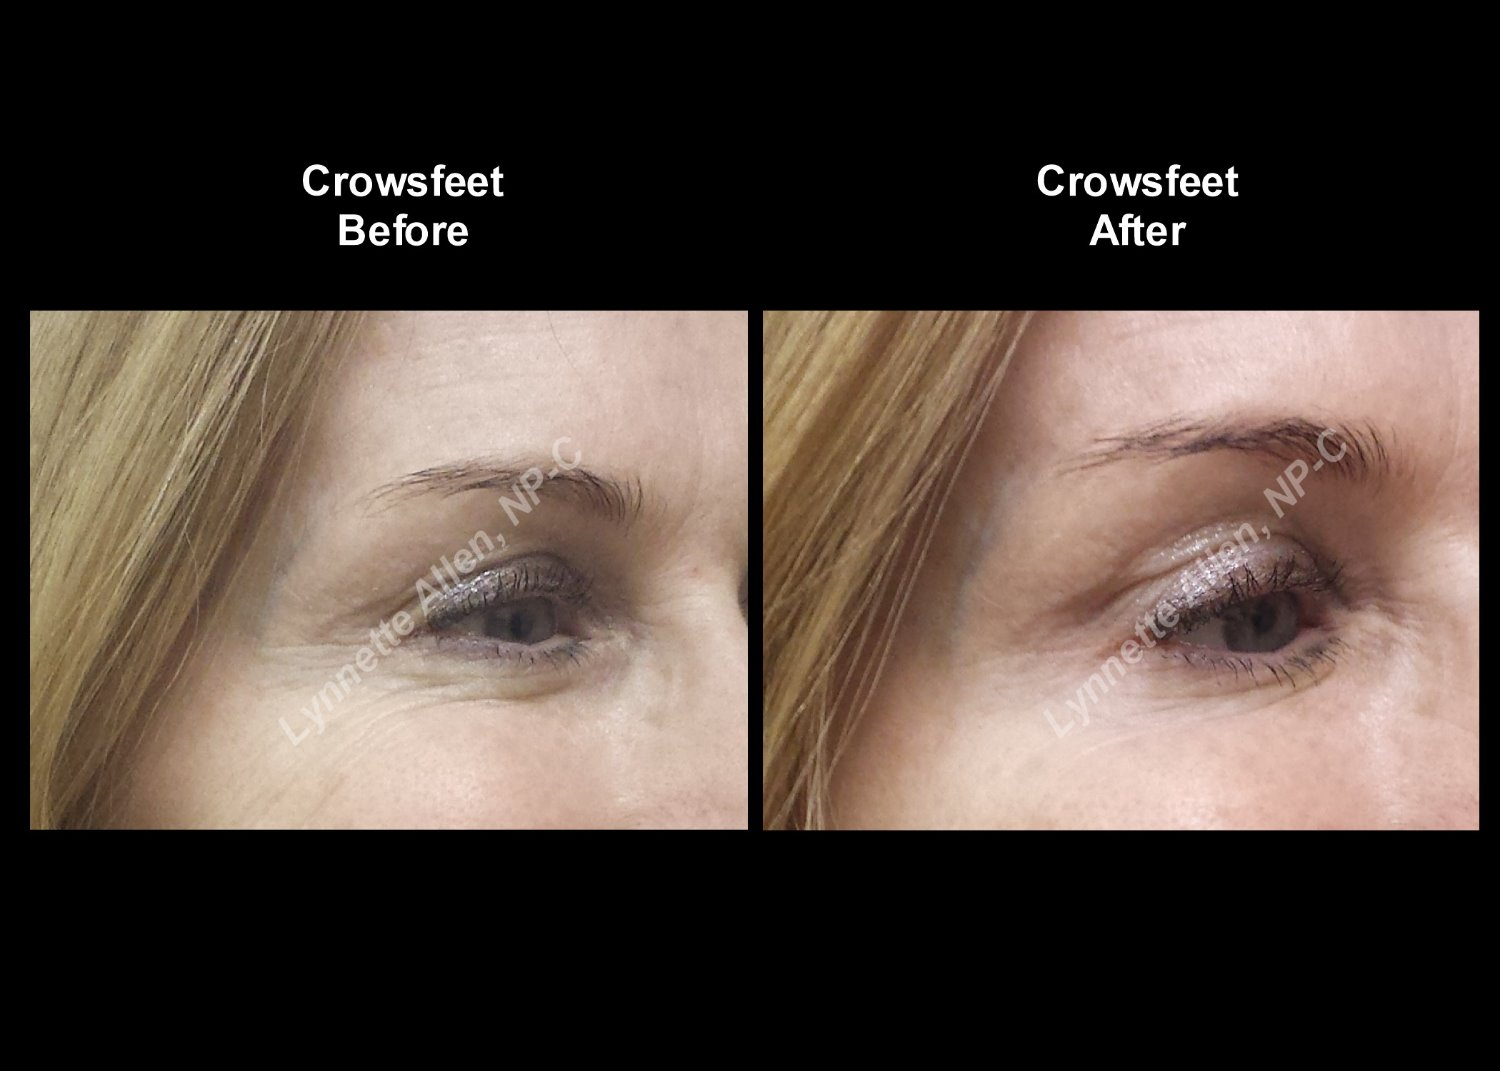 Crows feet before and after